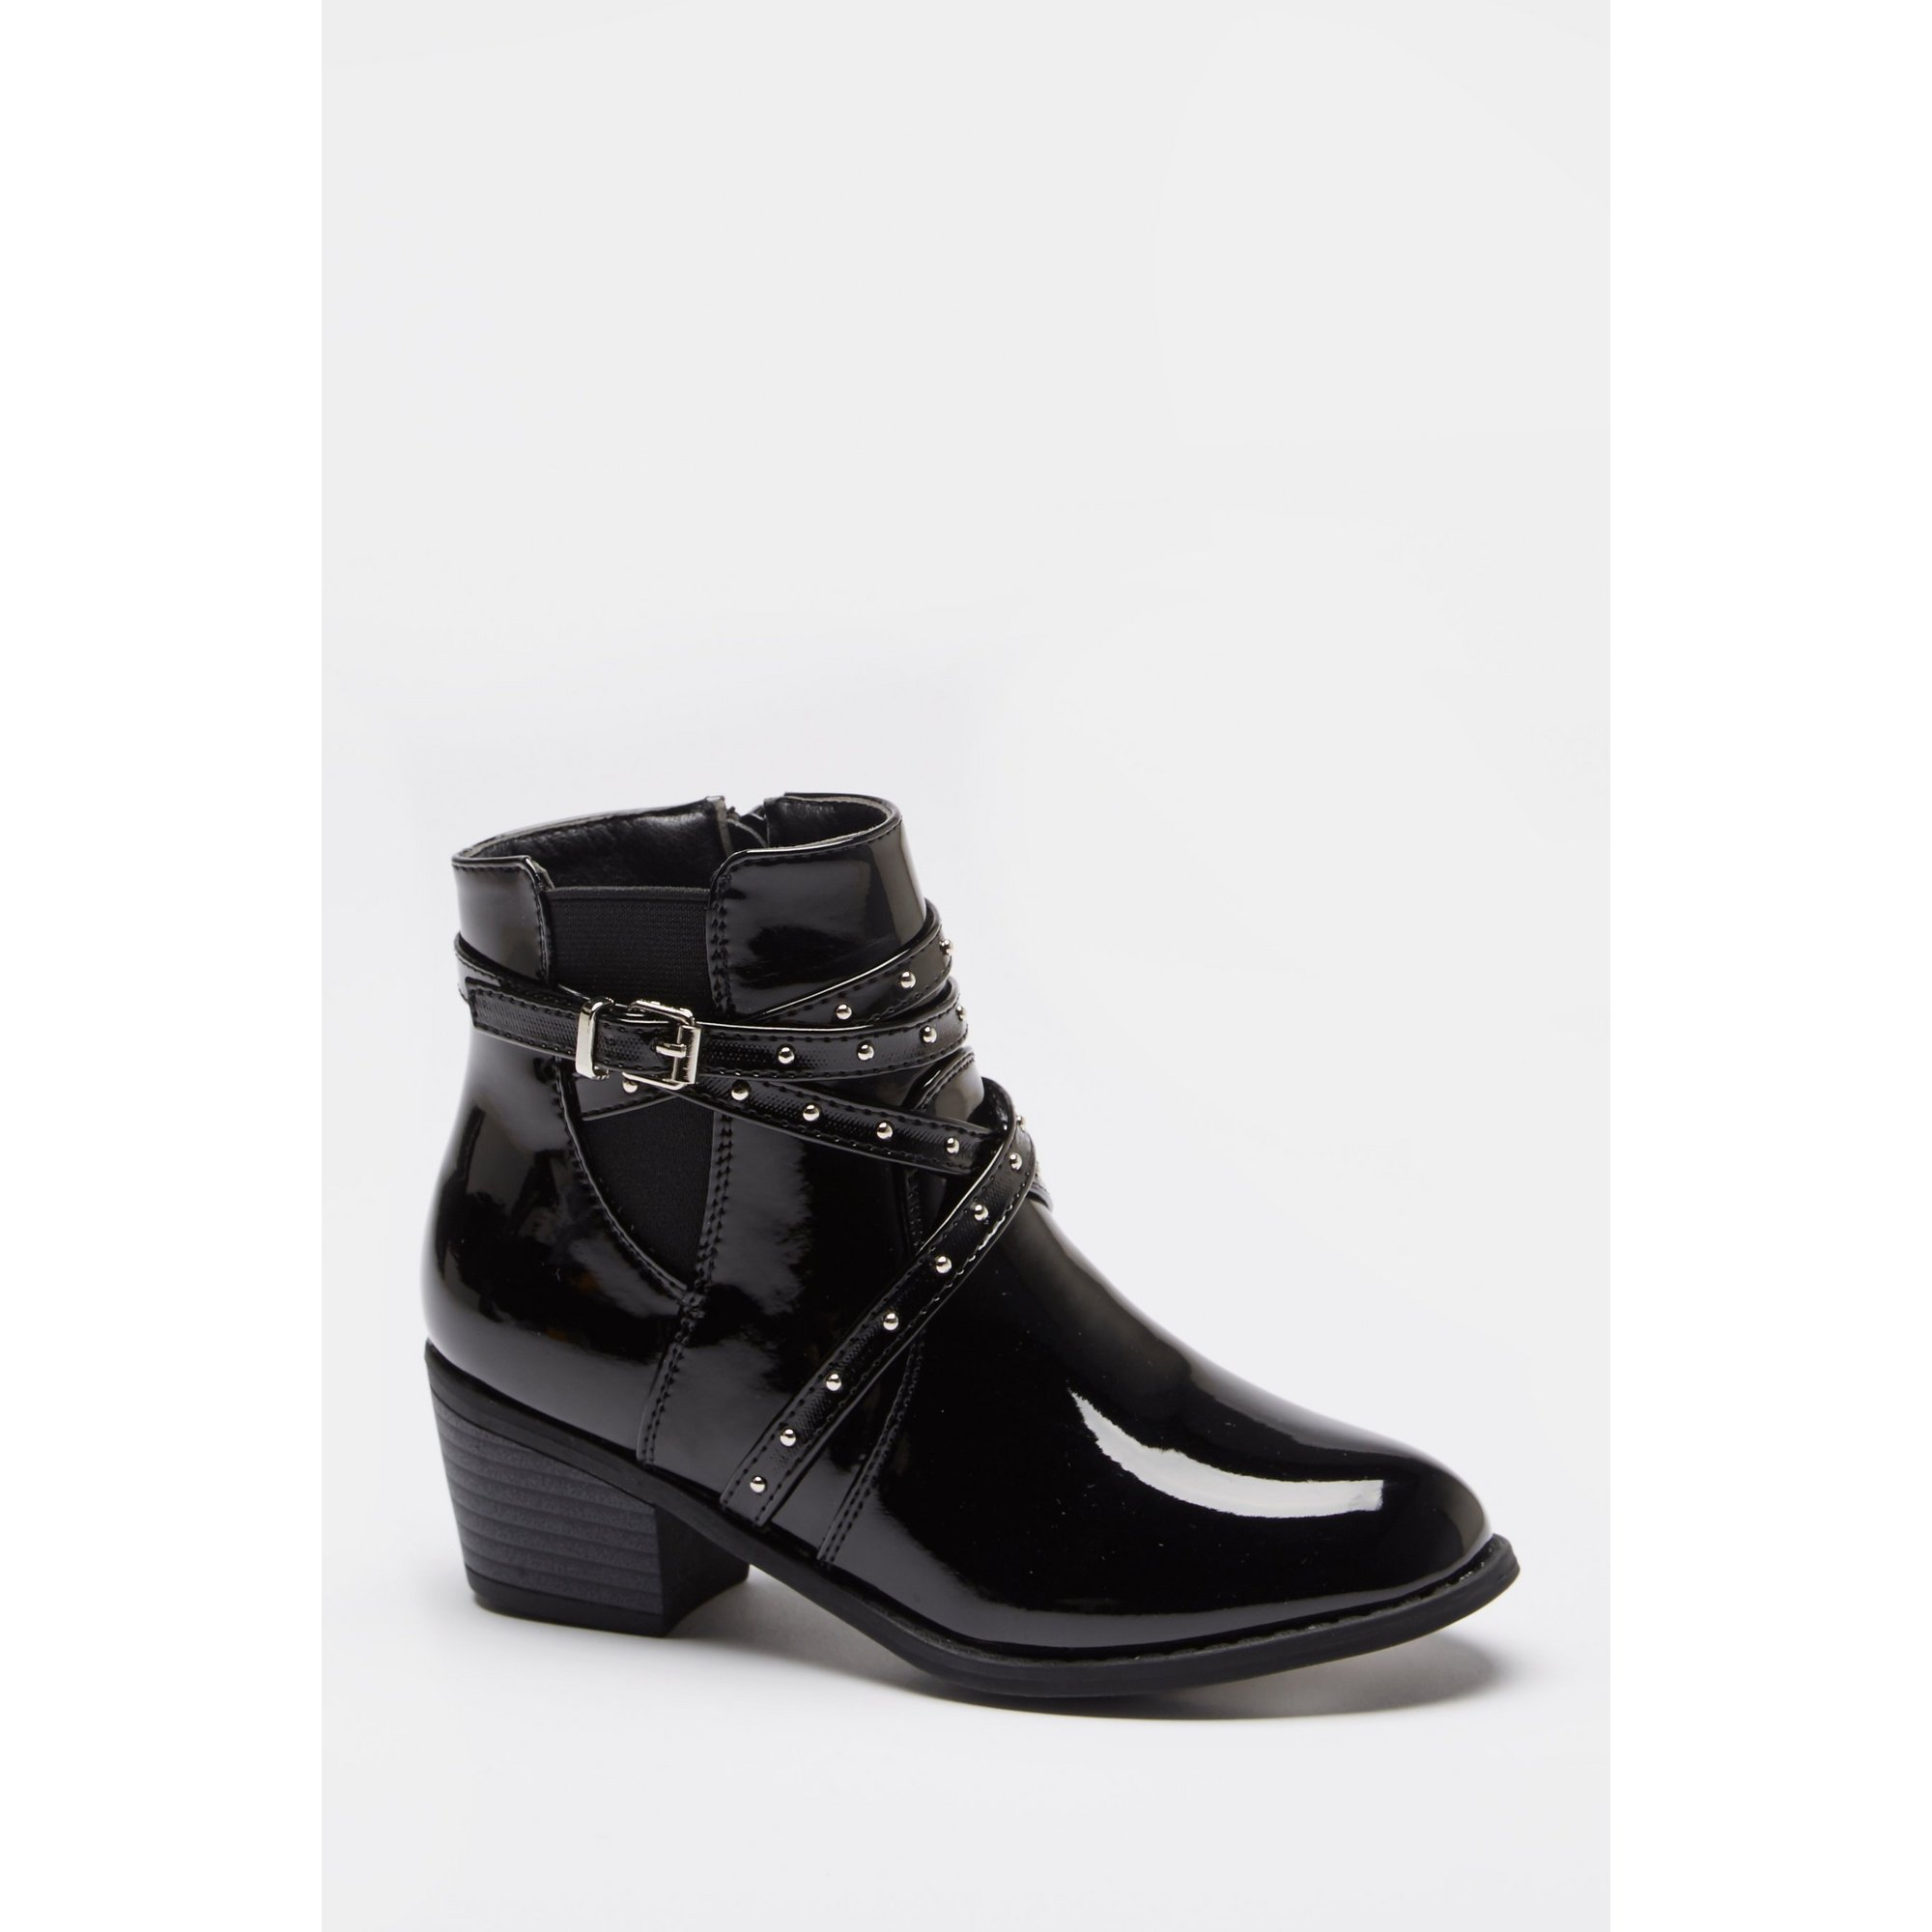 Image of Older Girls Stud Strap Patent Heel Boots